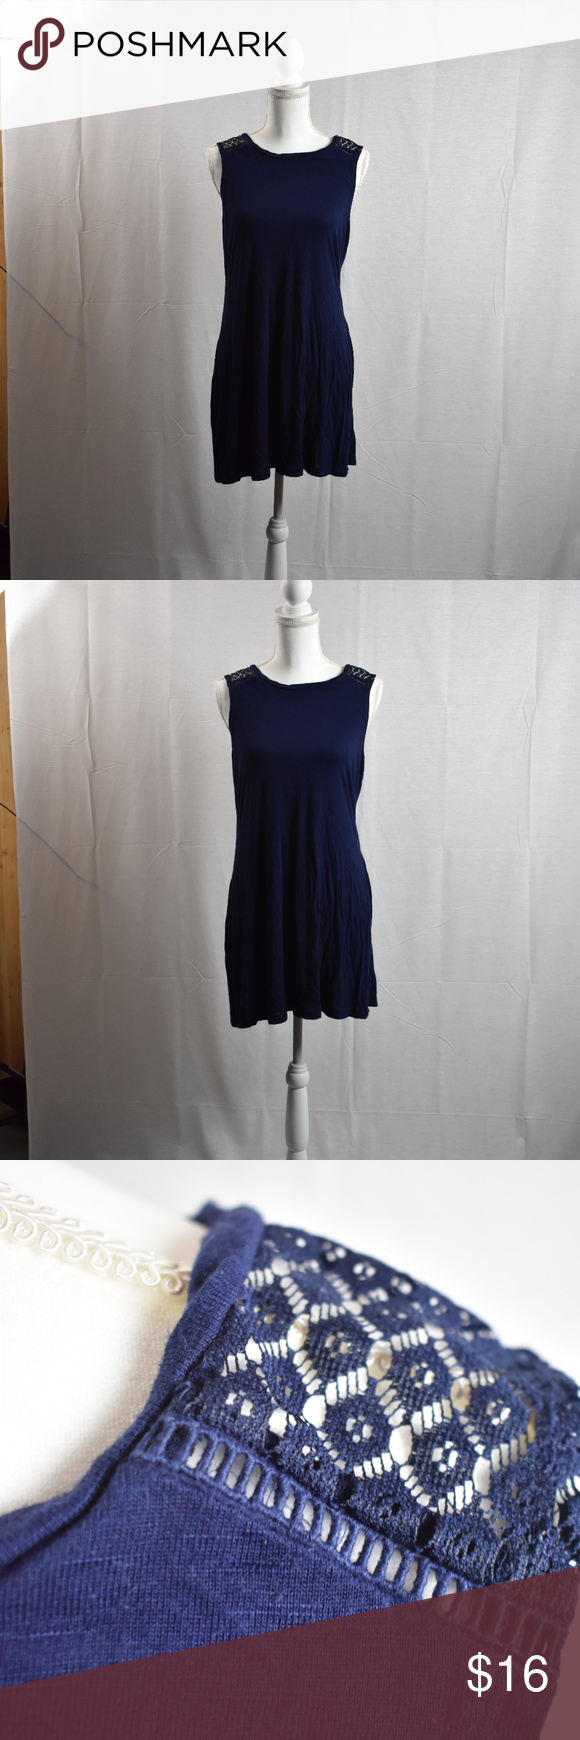 975fdb39d588 Charming Charlie Tank Dress - Size Medium Charming Charlie Jersey Knit dress  Lace Decal on the Shoulder Seam Navy Blue, Soft, Flowy Charming Charlie  Dresses ...